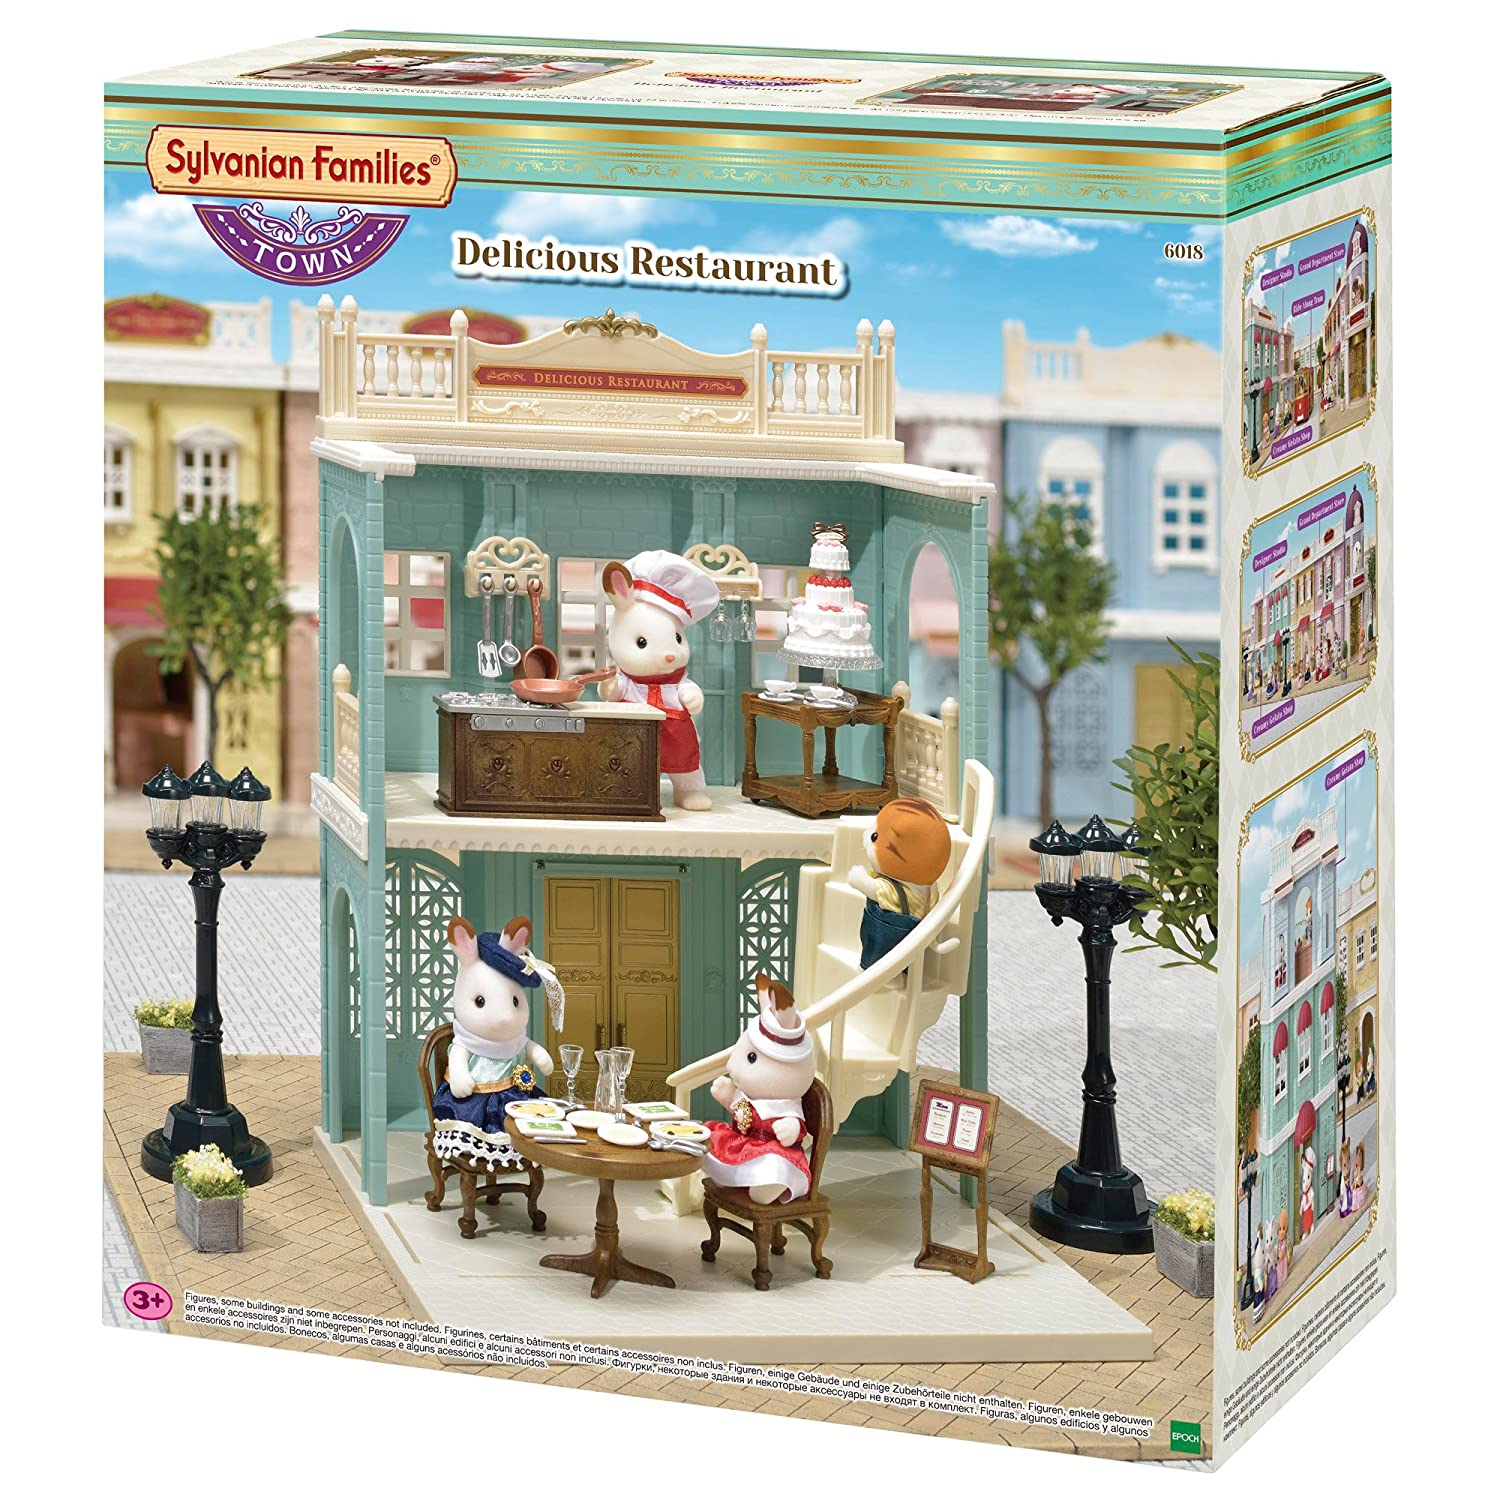 Sylvanian families 6018 delicious restaurant playset new town series sylvanian families amazon co uk toys games